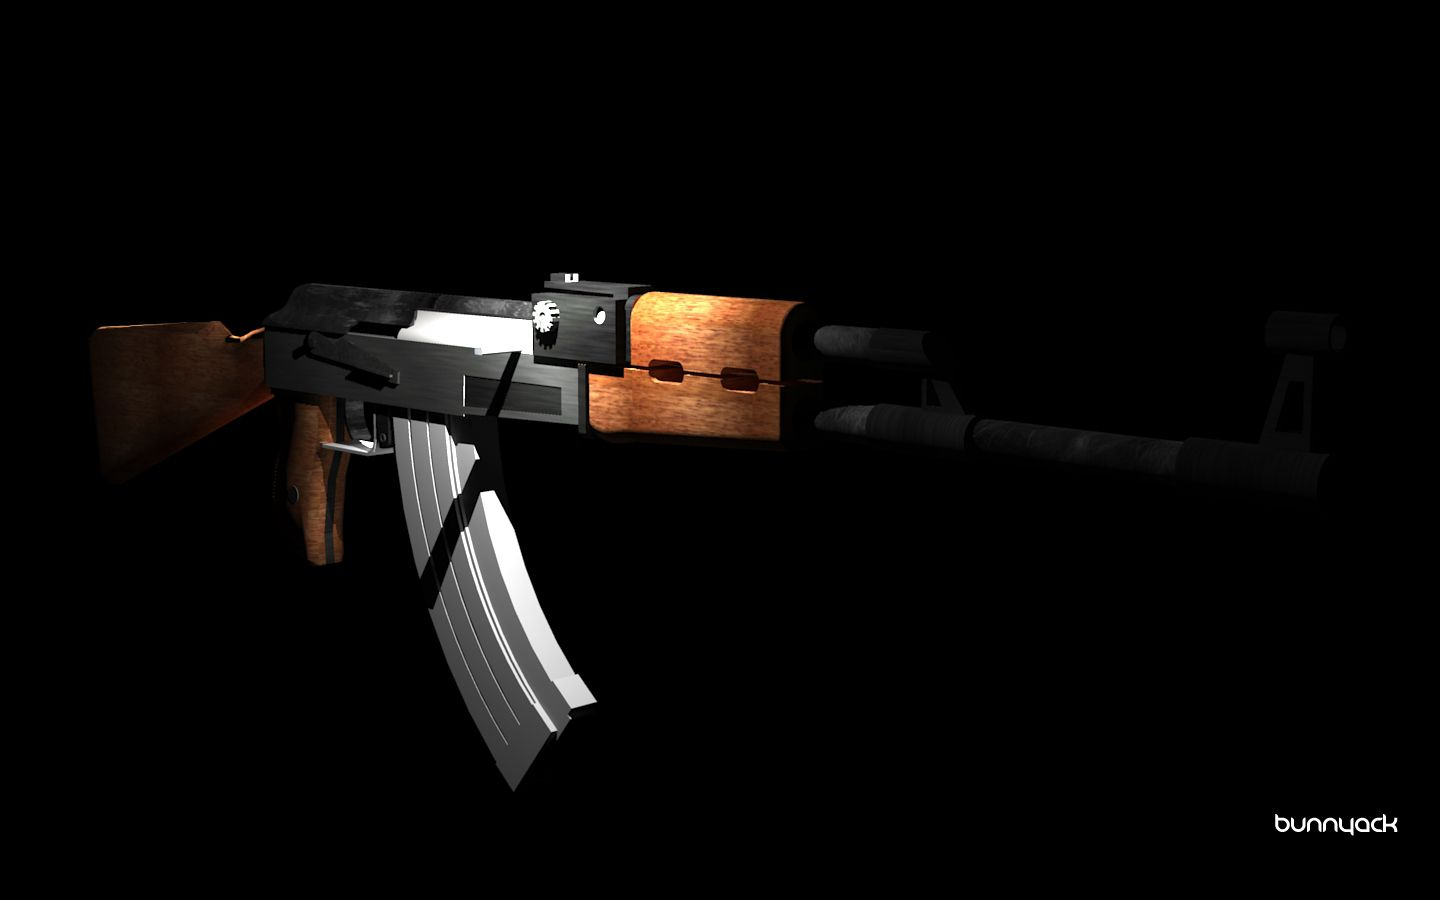 Ak47 Wallpaper 28635 Hd Wallpaper Pictures Top Wallpaper Galleries Photo Wallpapers For Mobile Phones Hd Images Wallpaper